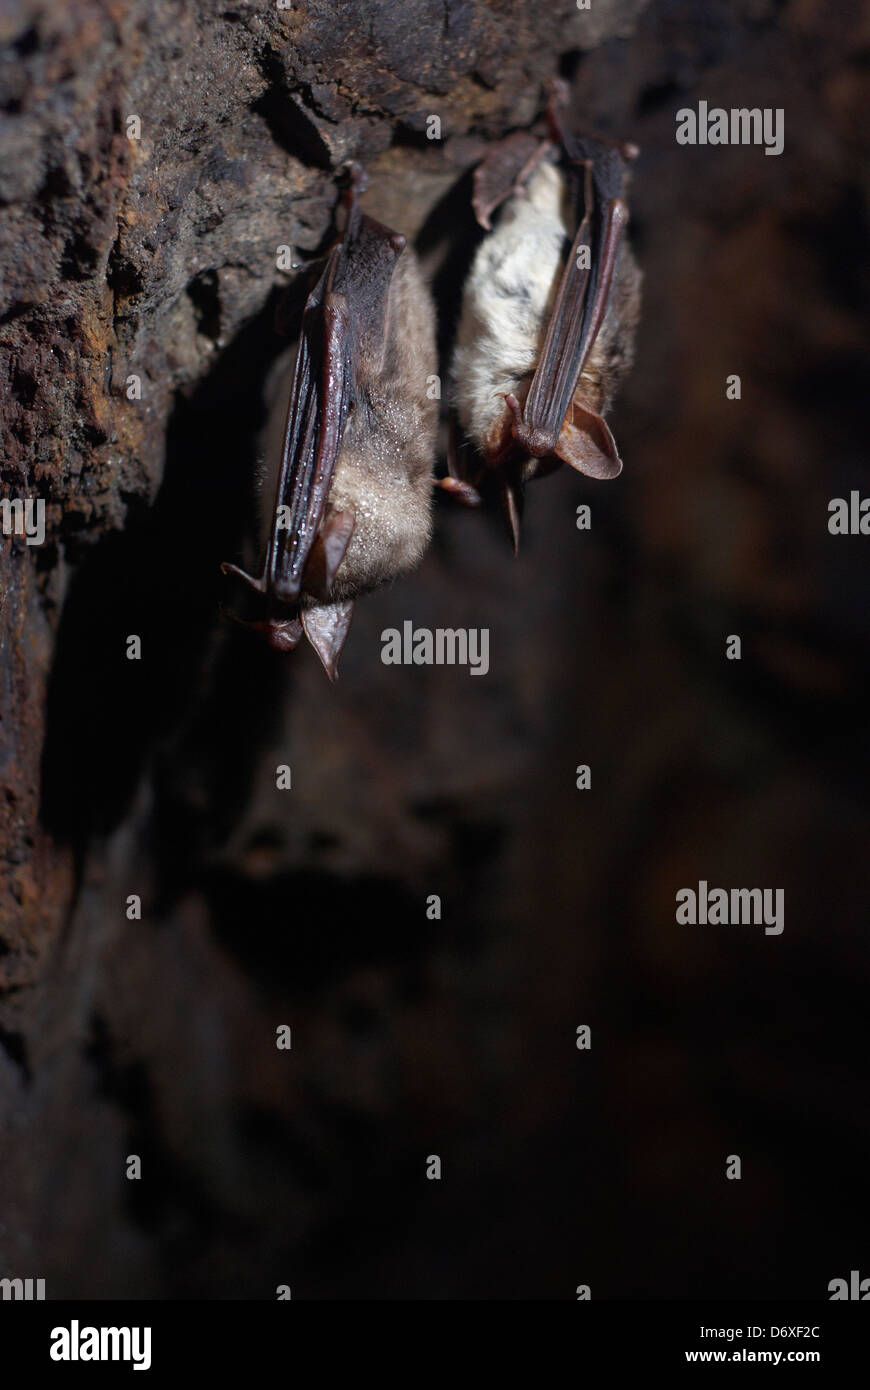 Common bats hibernating in a cave - Stock Image